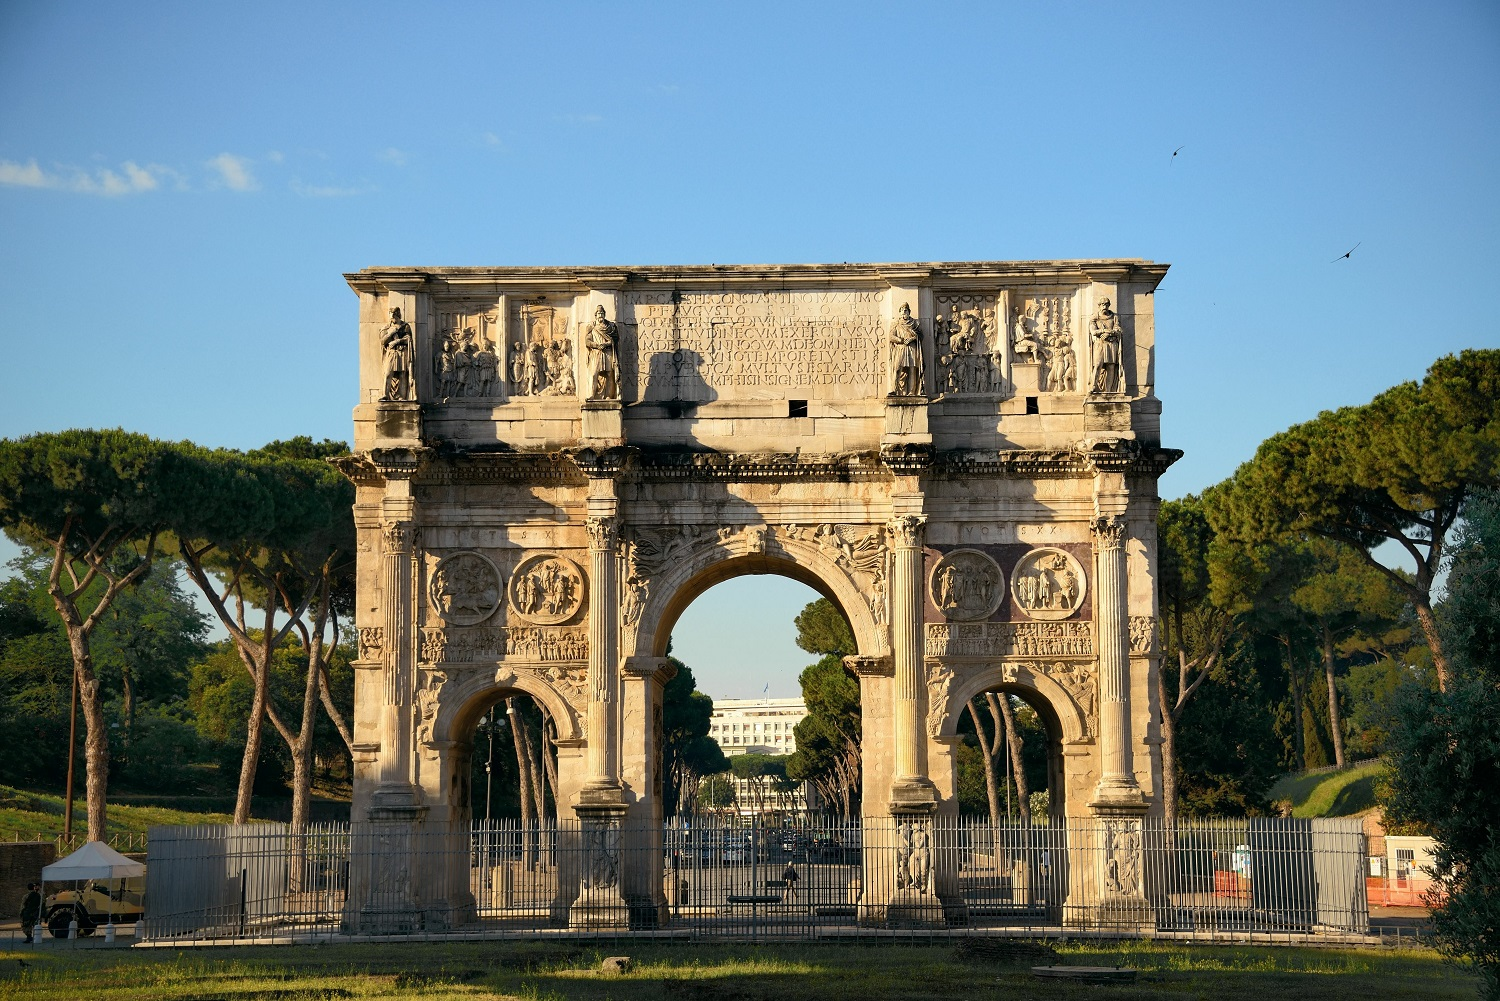 Arch of Constantine in Rome, Italy.